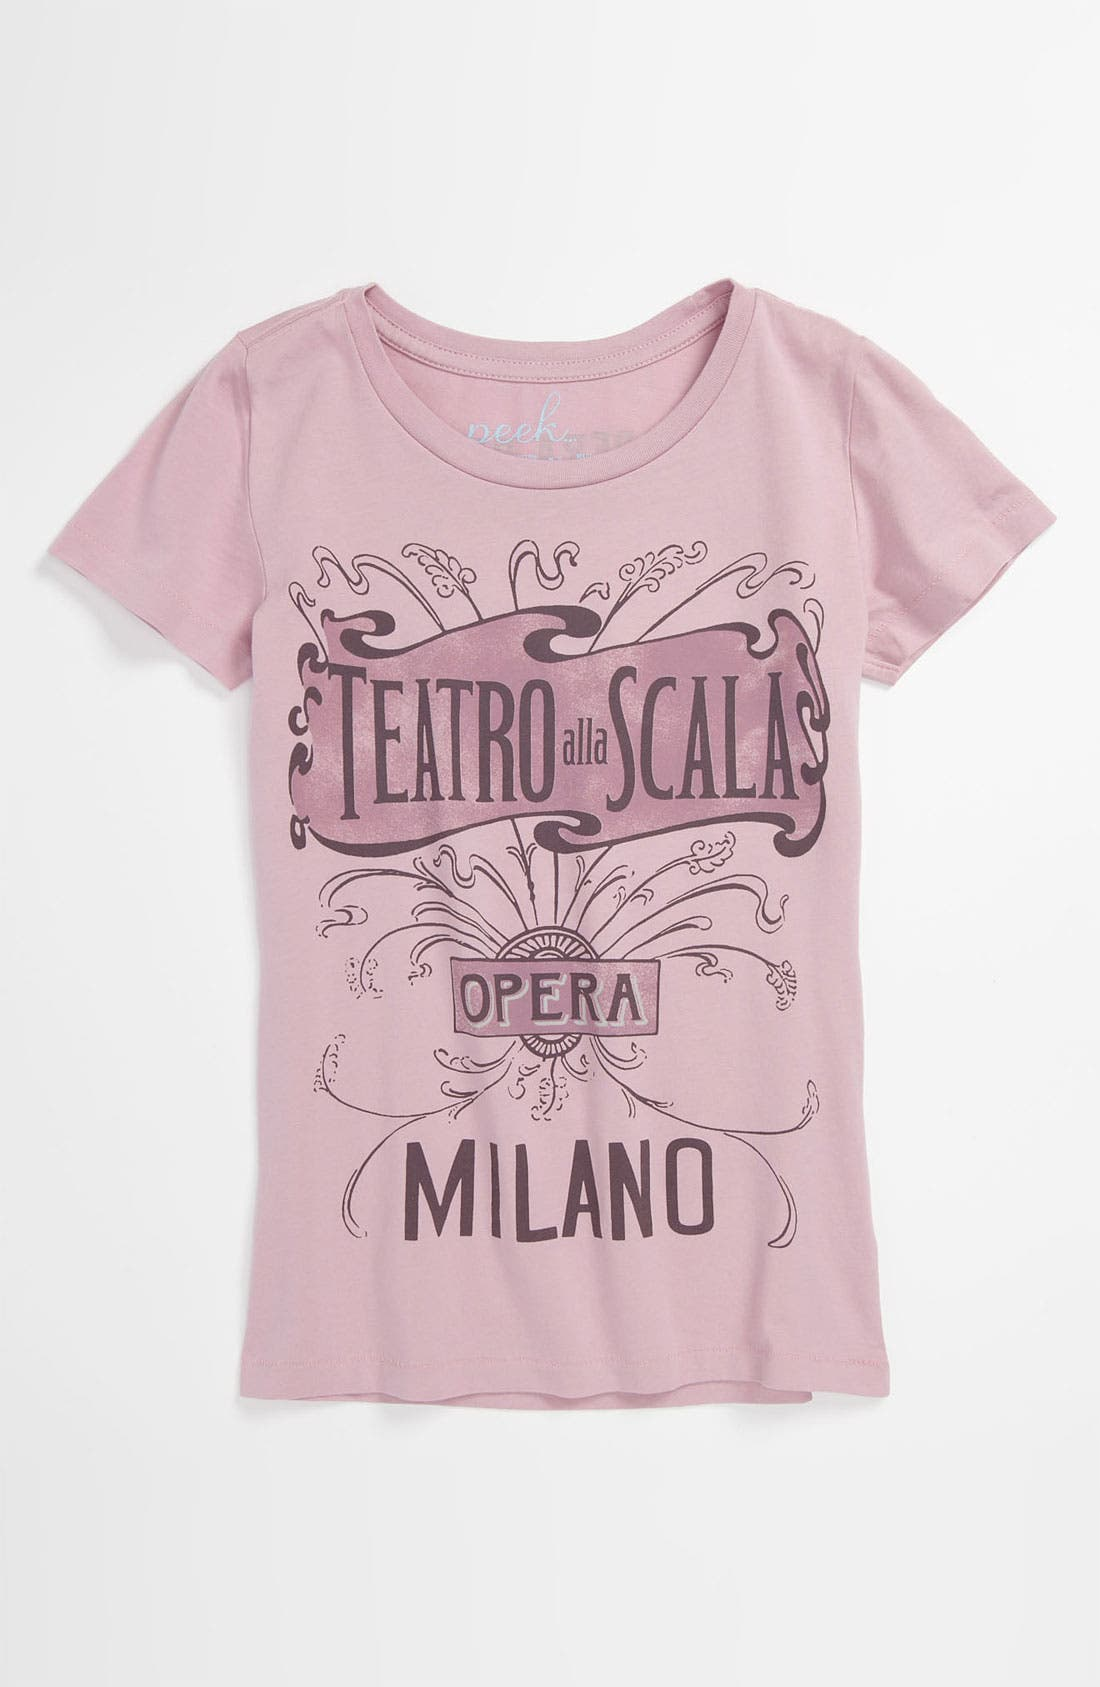 Main Image - Peek 'Teatro' Tee (Toddler, Little Girls & Big Girls)